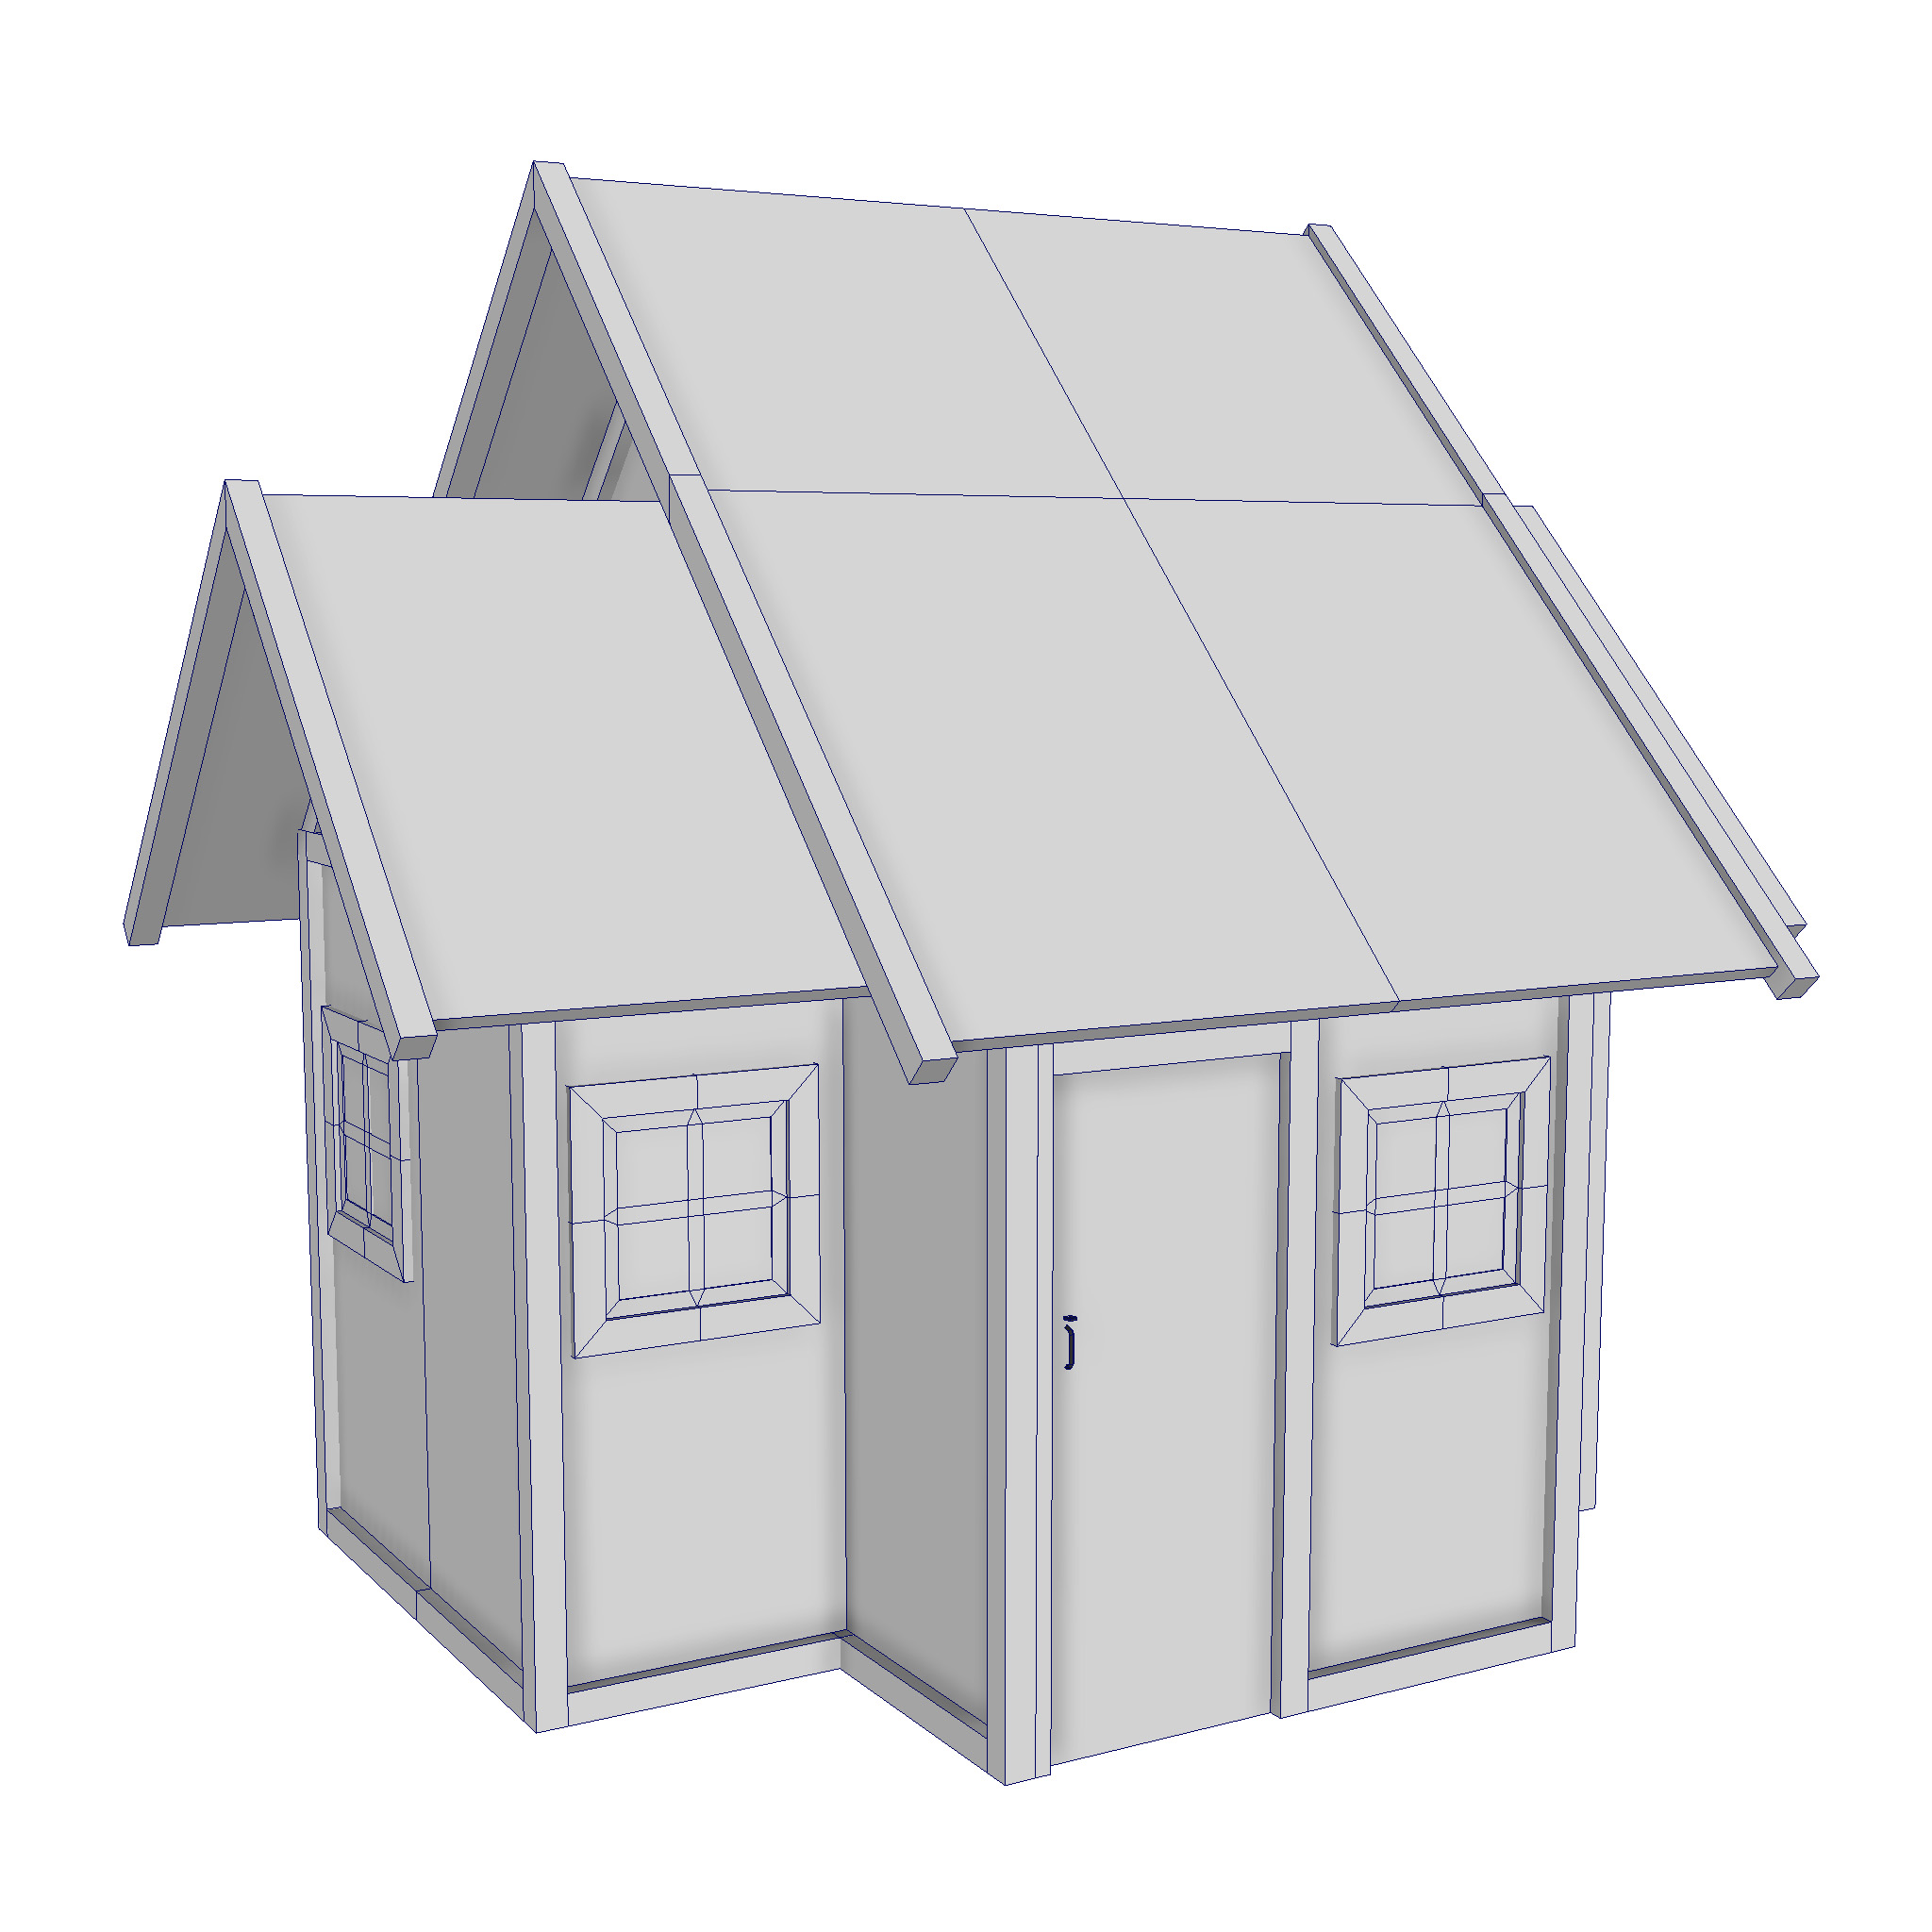 modular wood house set 3d model fbx ma mb 271450